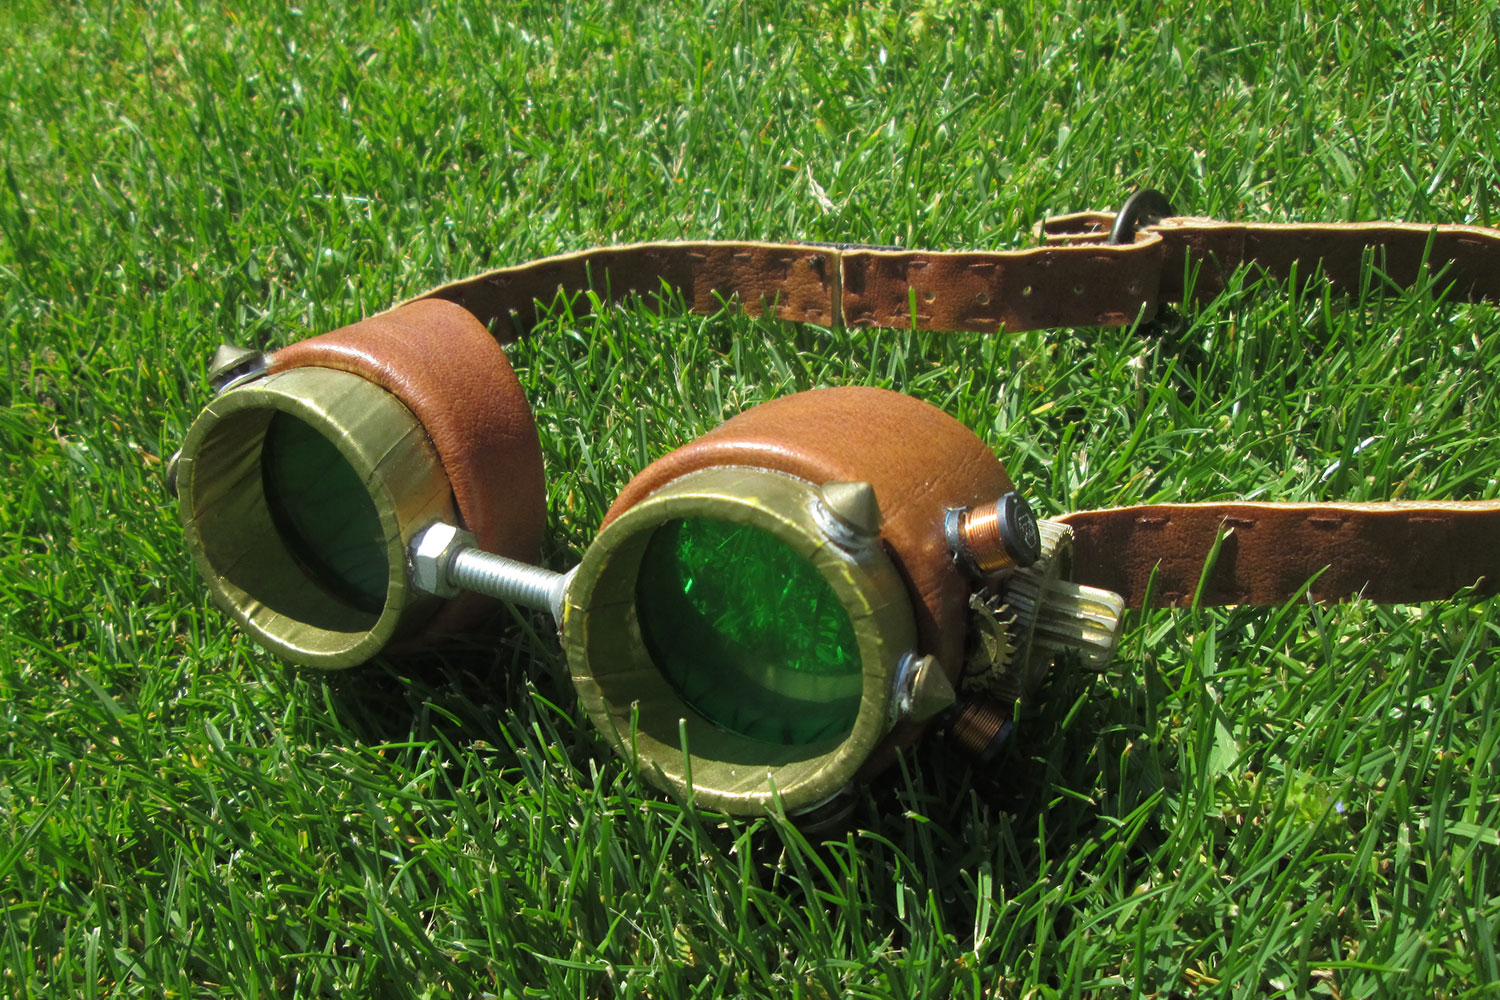 How to Build a Set of DIY Steampunk Goggles | Digital Trends